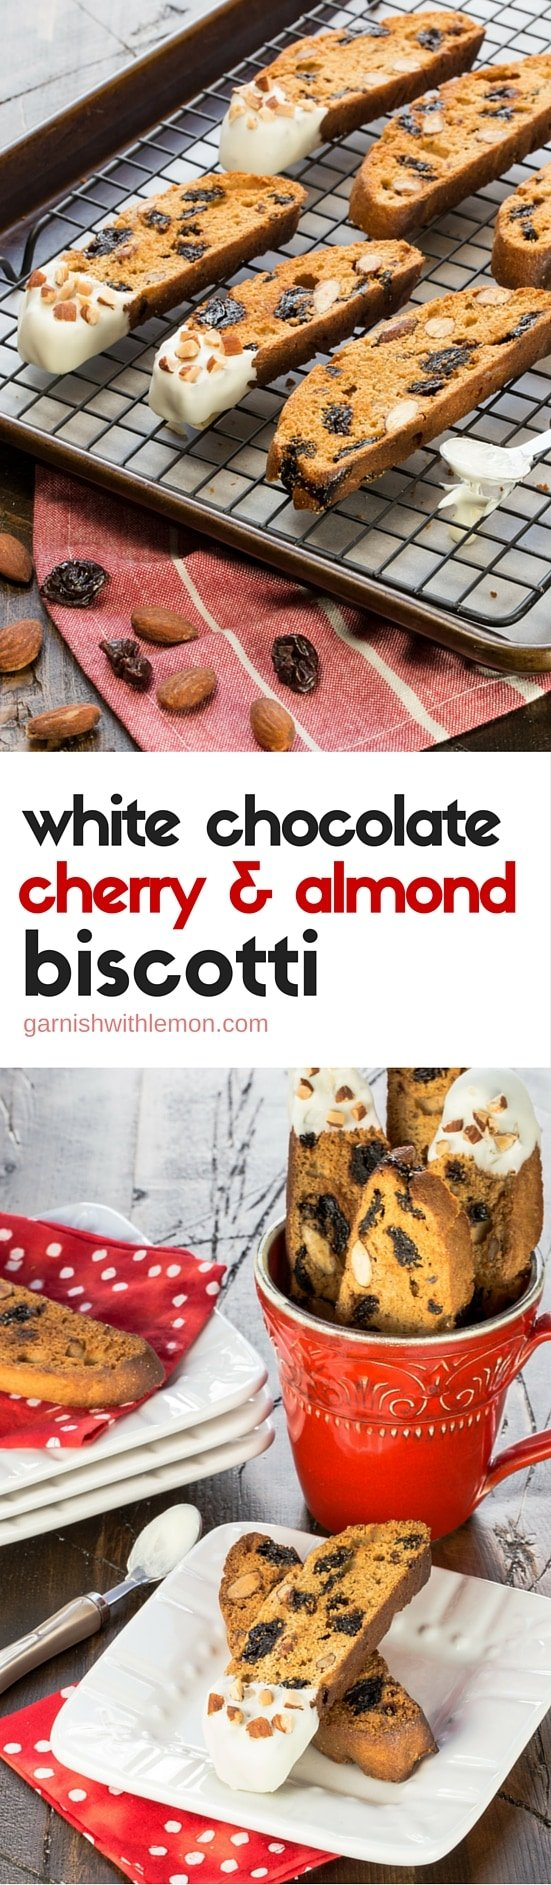 These simple White Chocolate, Cherry and Almond Biscotti make fantastic homemade food gifts during the holidays.